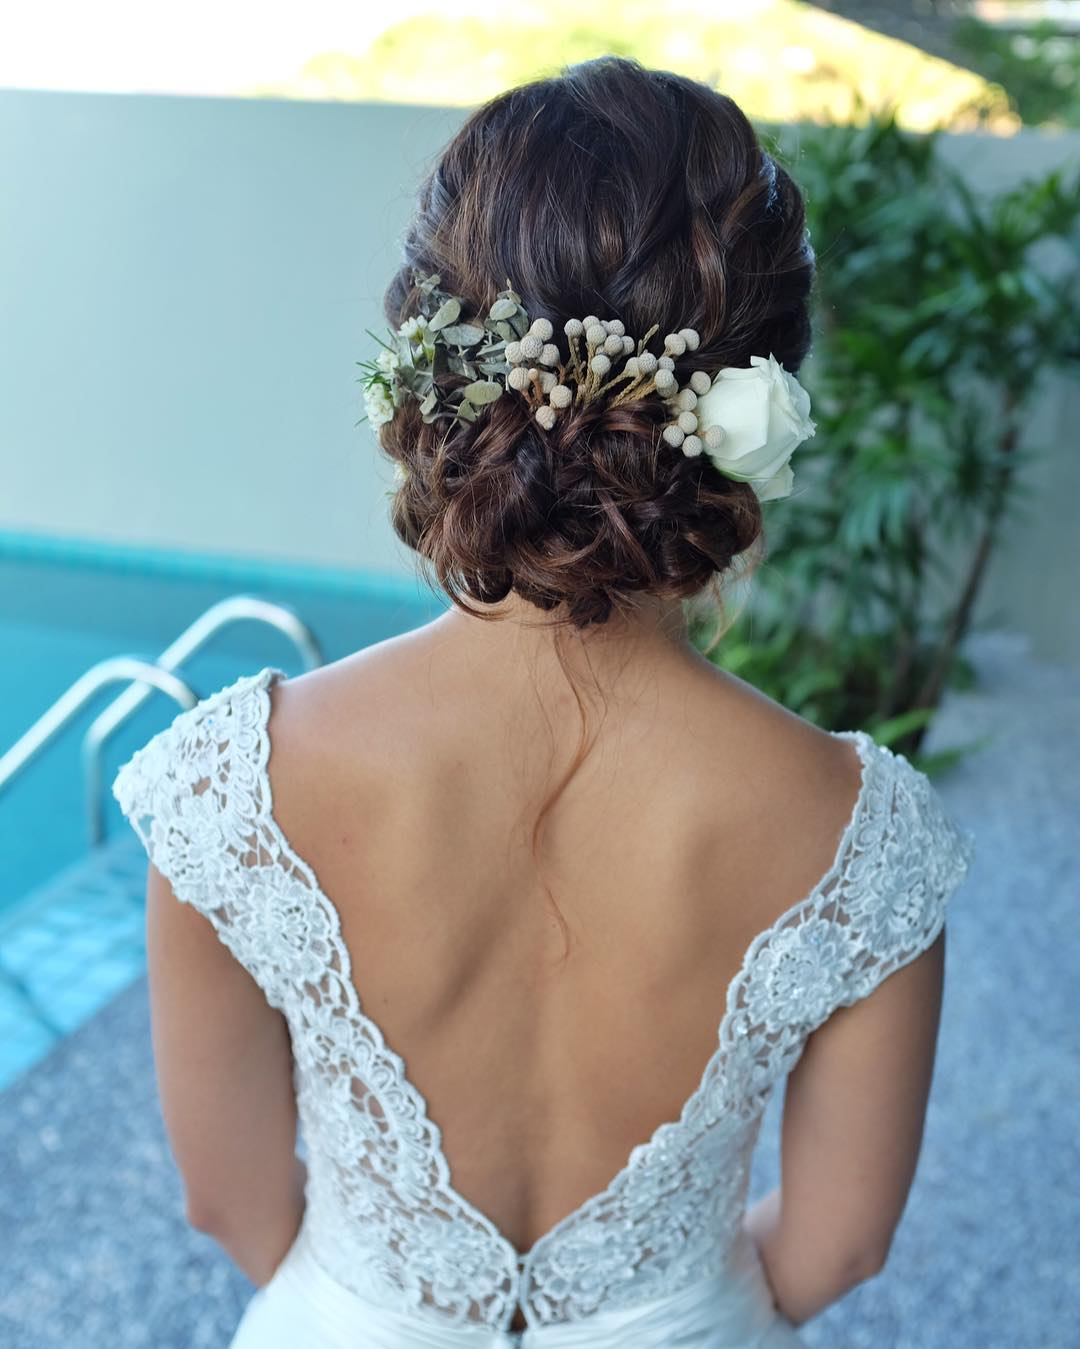 Latest Trendy Wedding Hairstyle Looks So Gorgeous